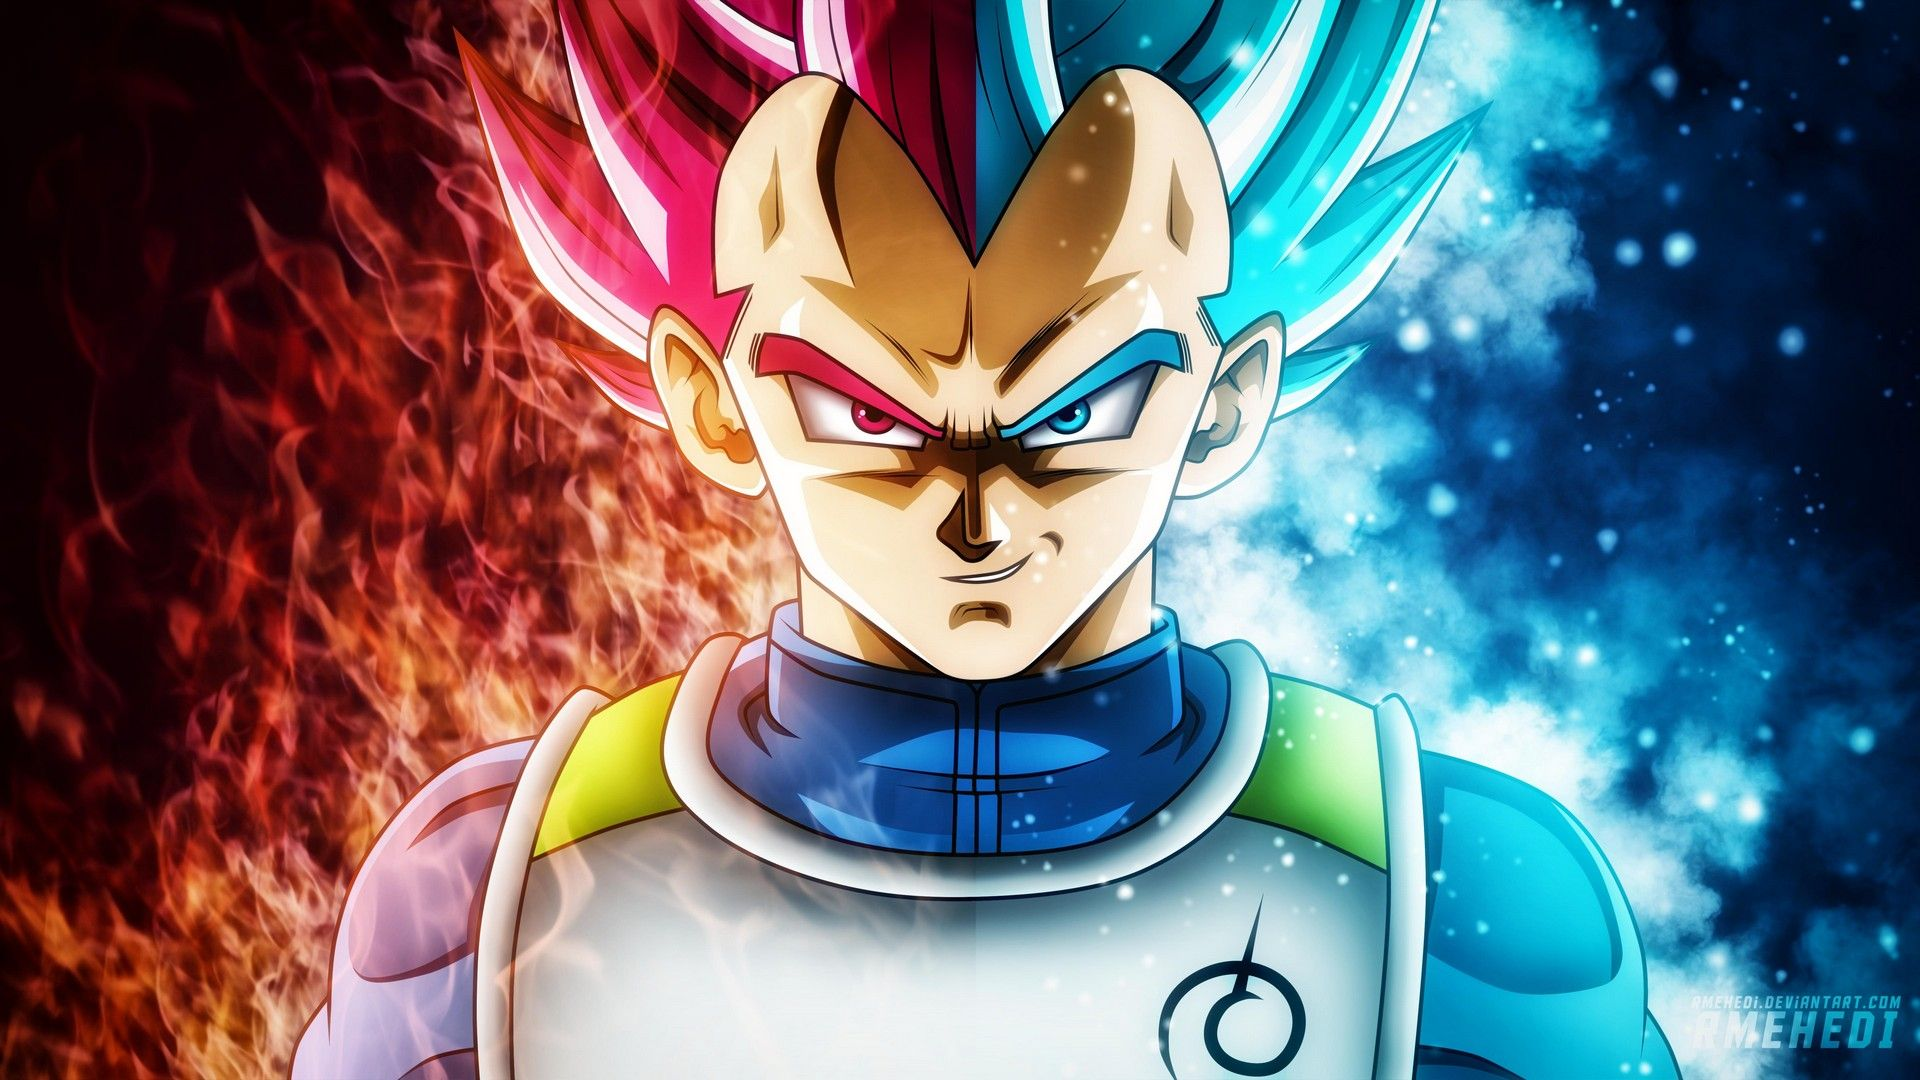 dragon ball super vegeta wallpaper - 2018 wallpapers hd | pinterest